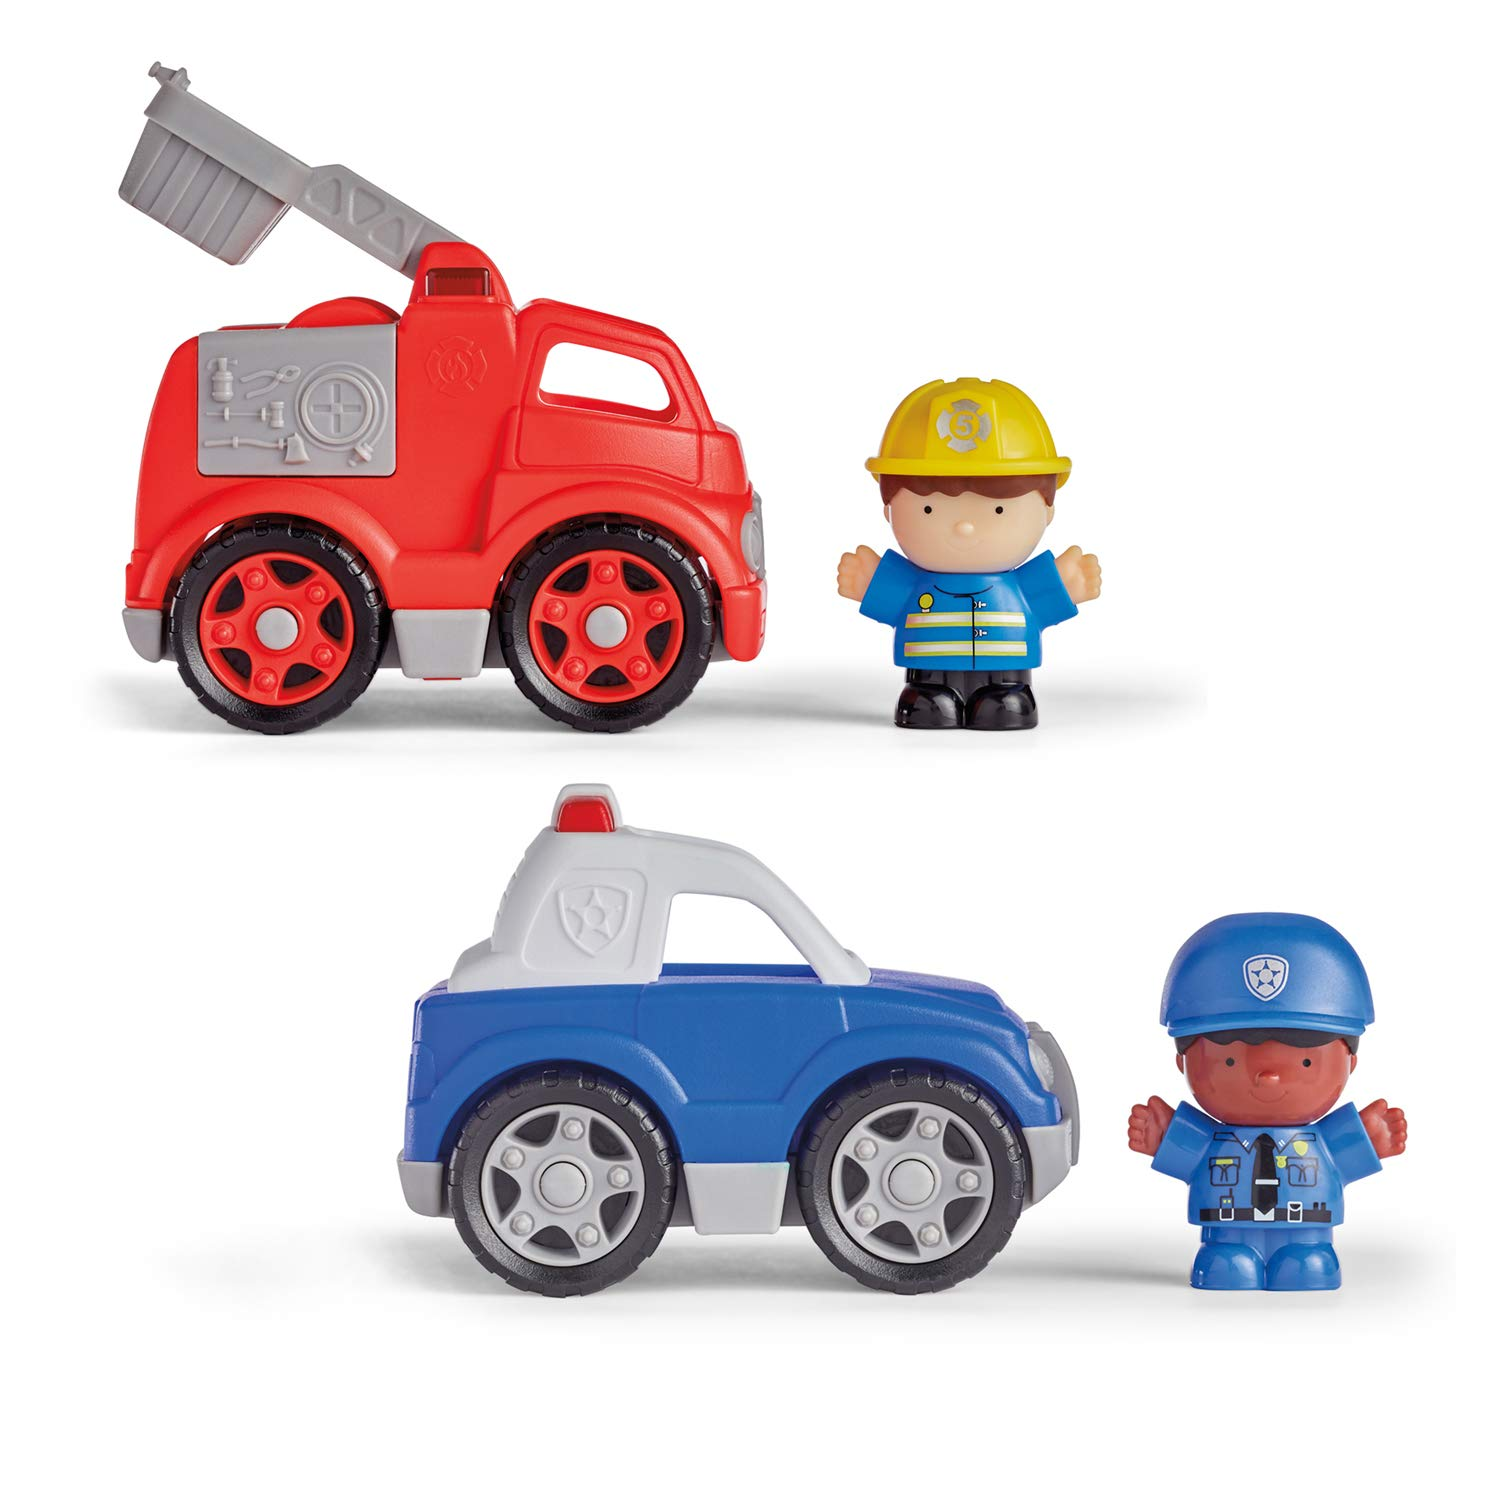 Kidoozie Little Drivers, Police Car and Fire Engine (Pack of 2 Vehicles and 2 Figures), 18 Months and up